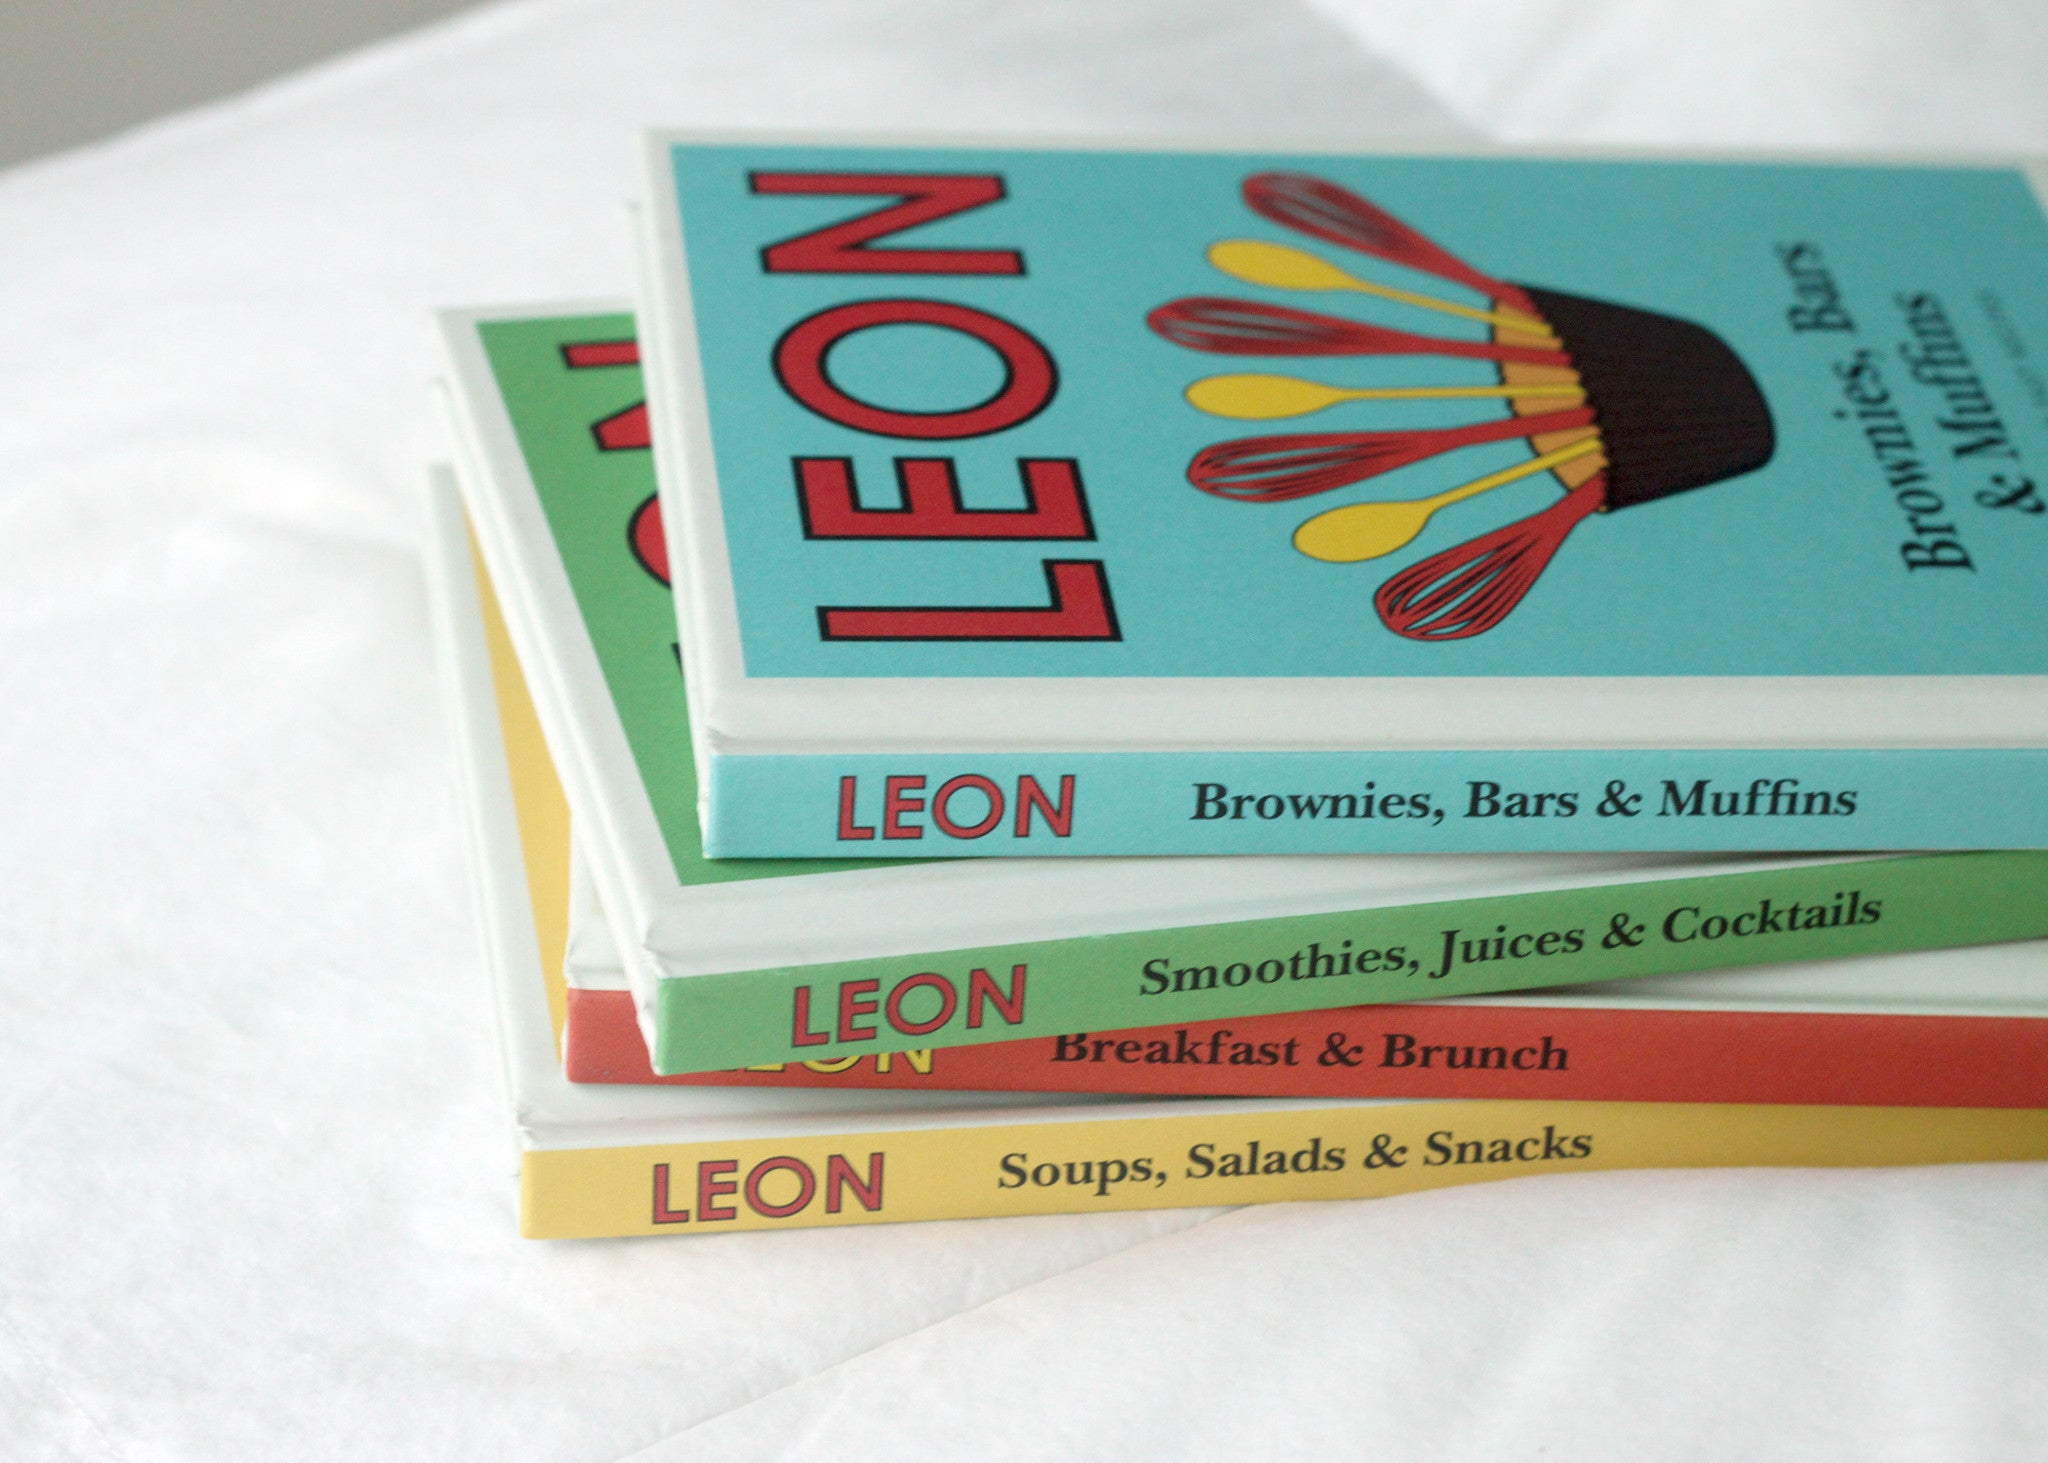 LEON: Brownies, Bars, and Muffins